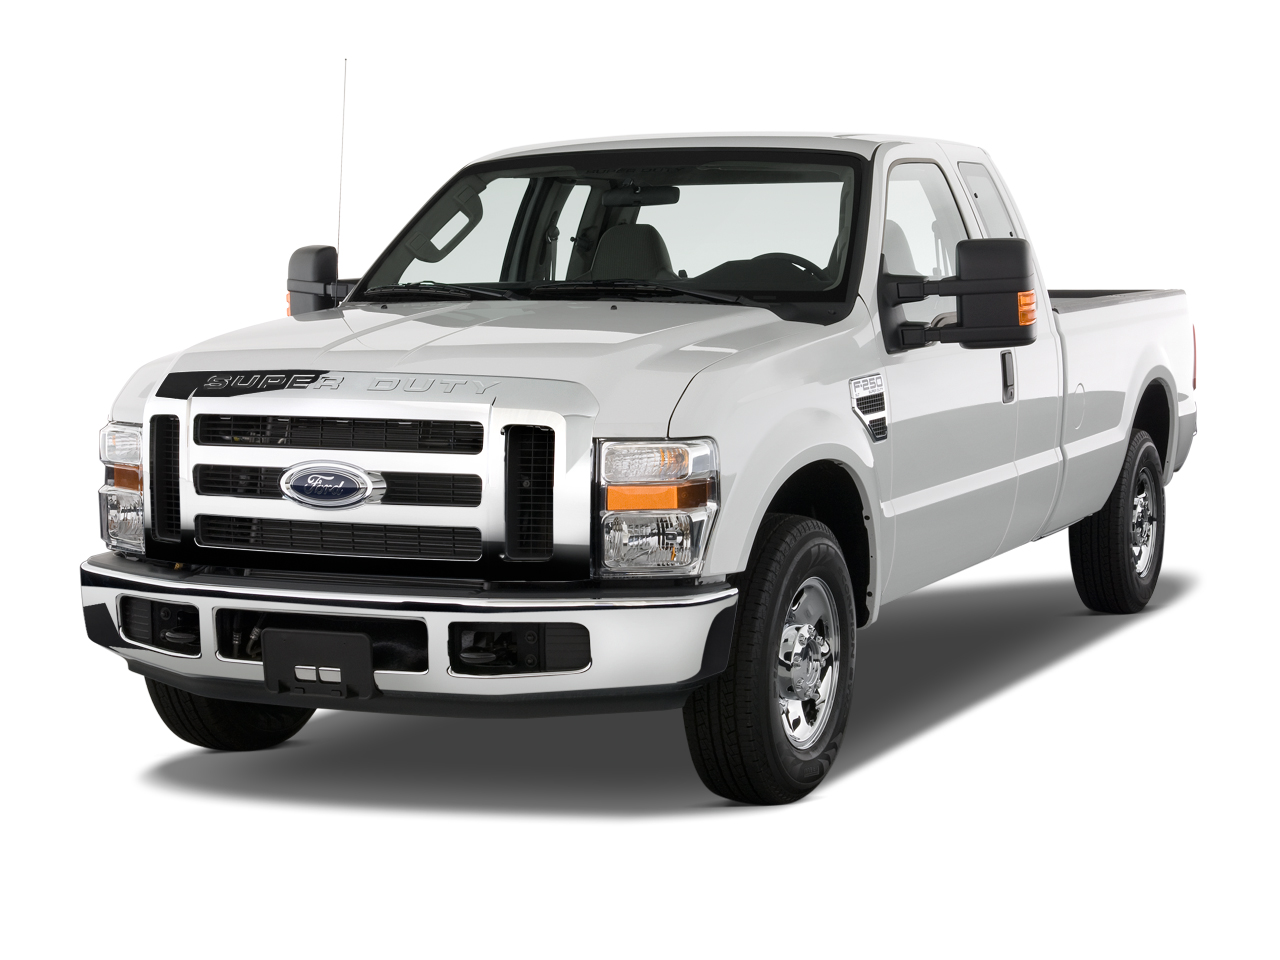 2010 Ford Super Duty F 250 Page 1 Review The Car Connection